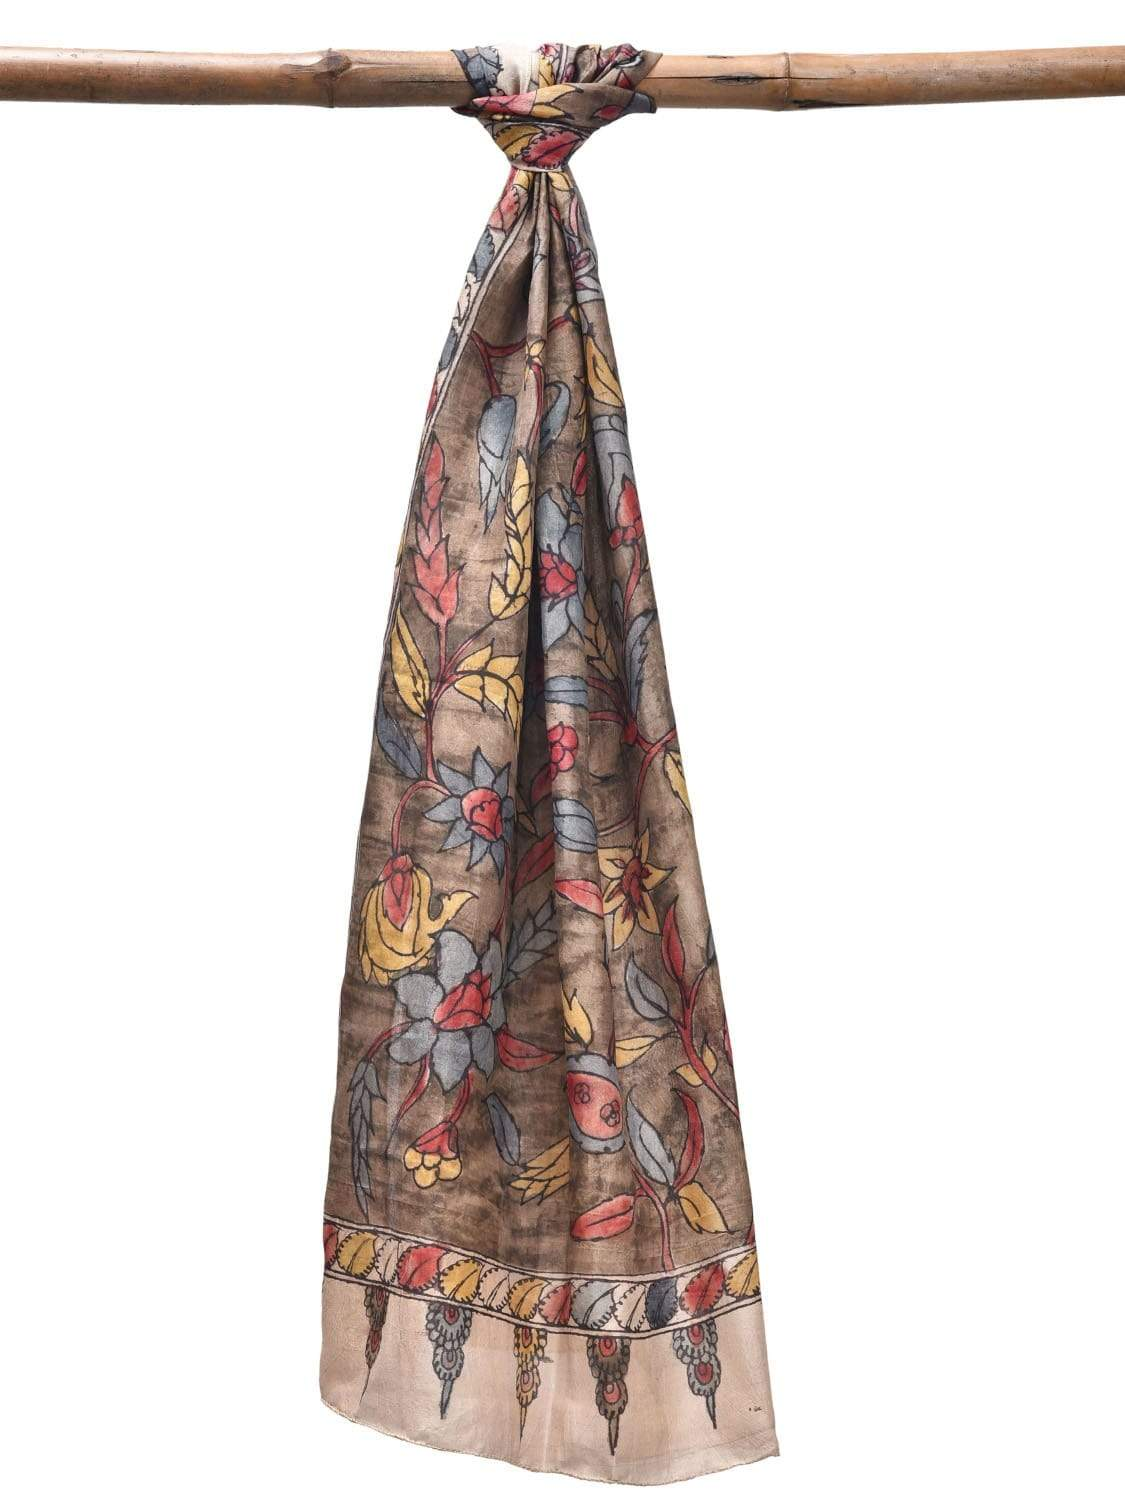 Khaki Kalamkari Hand Painted Silk Stole with Floral Design ds1914